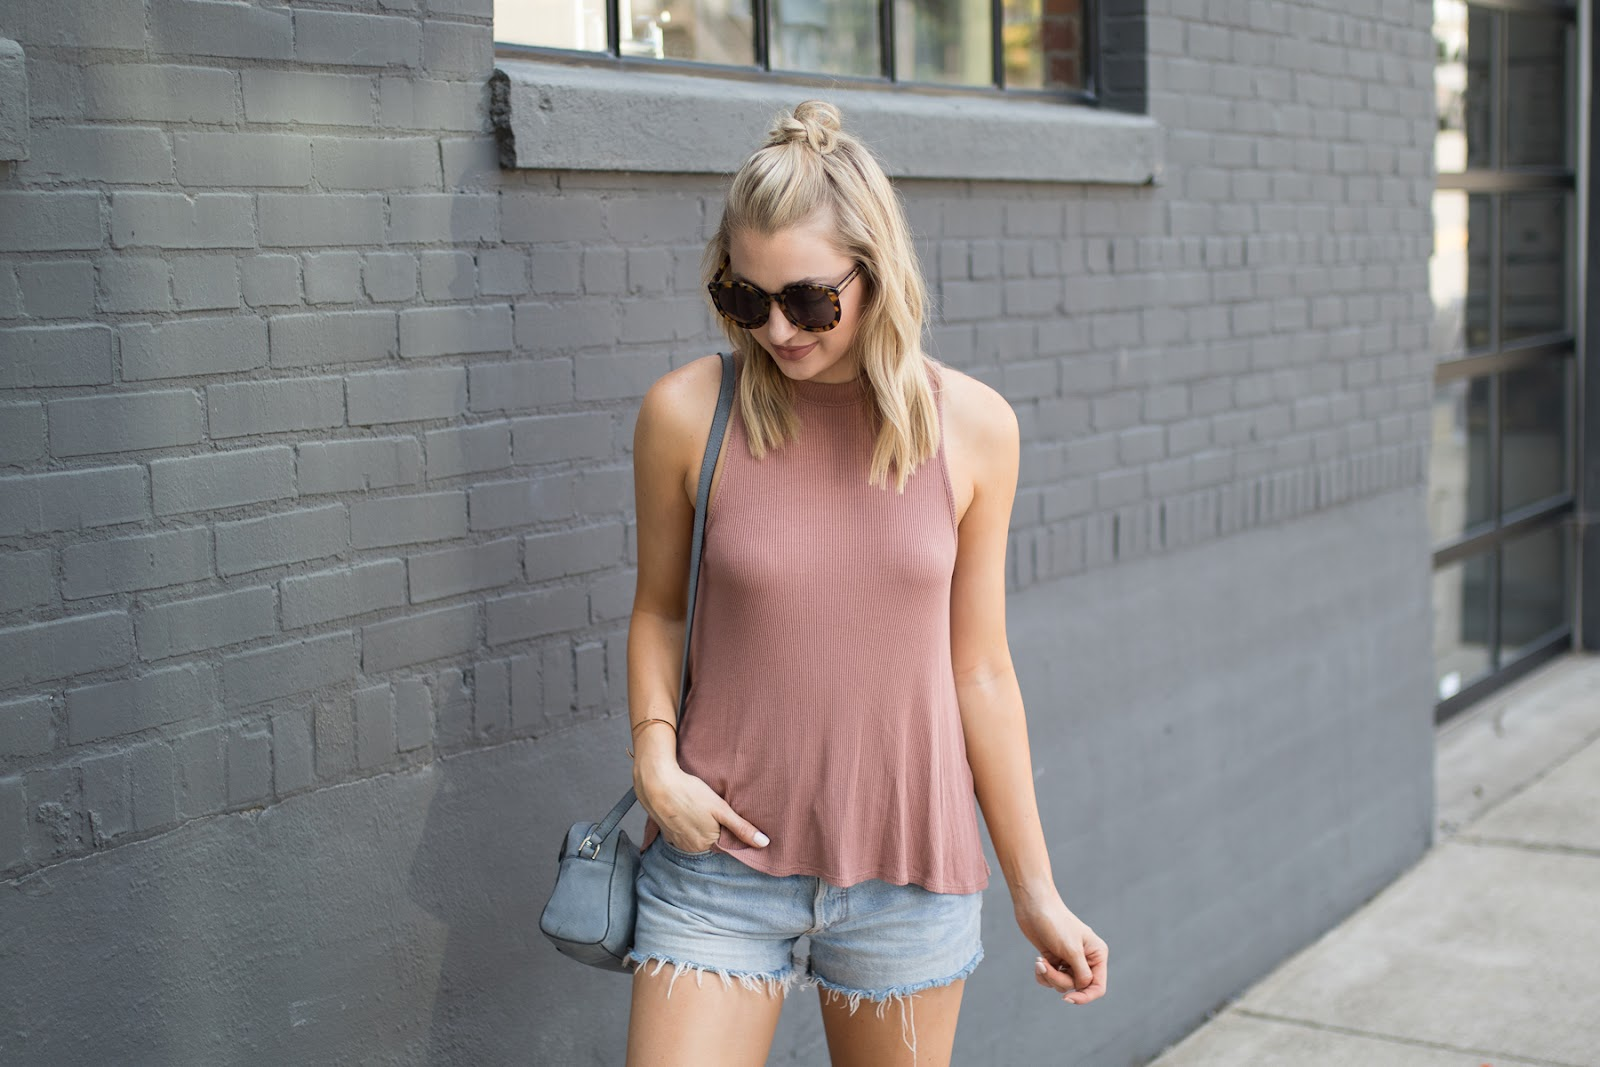 Dusty rose pink tank